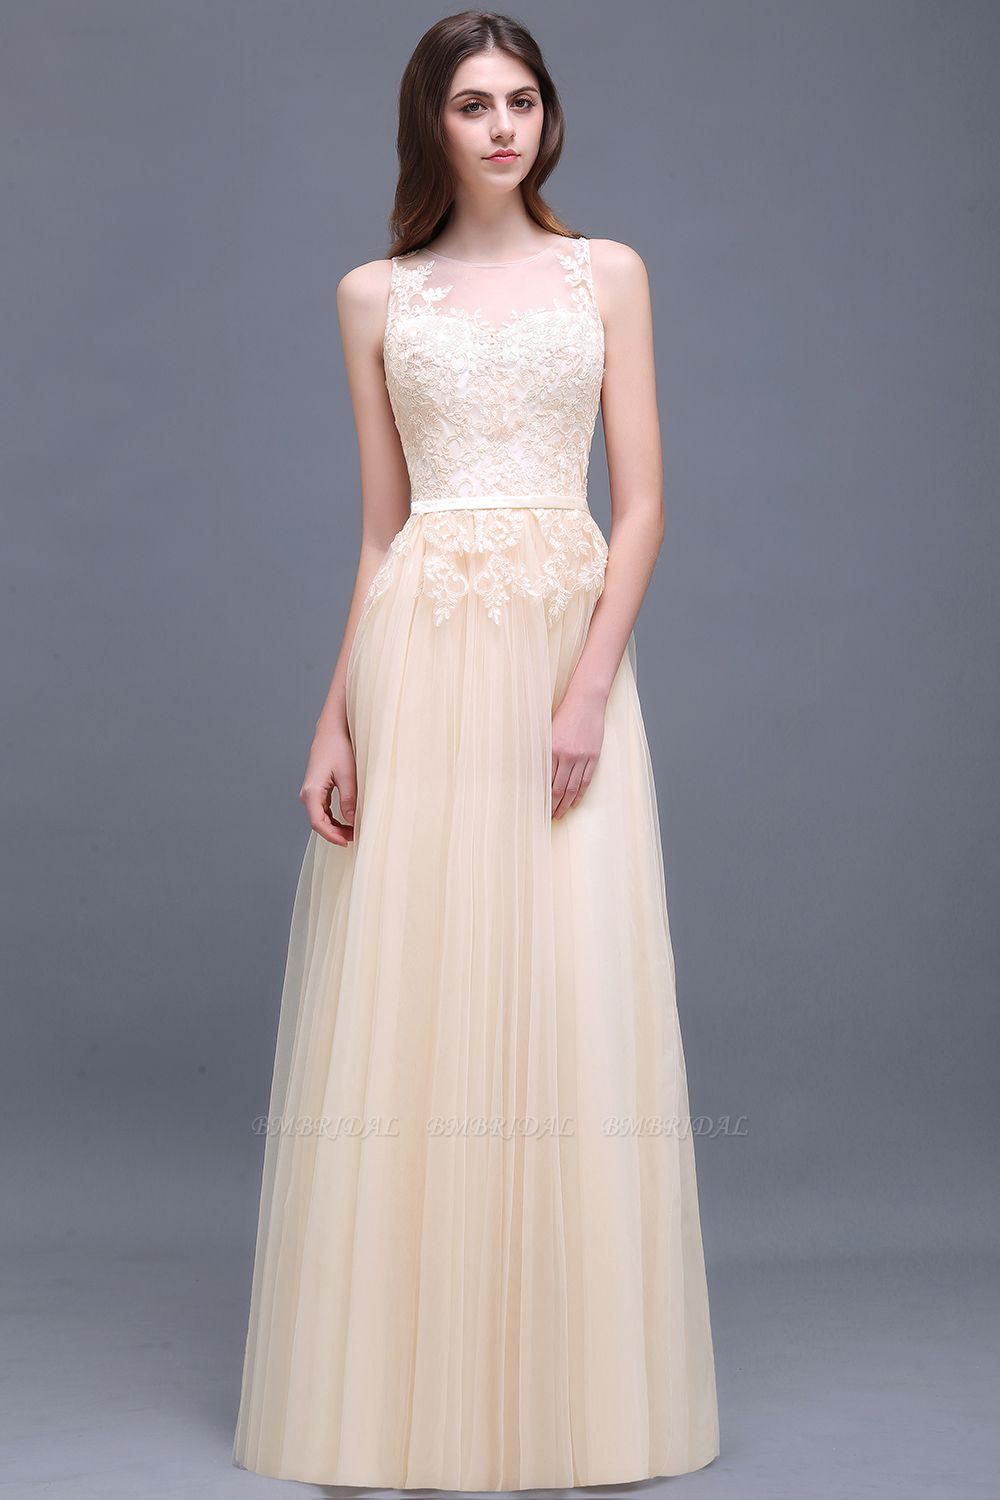 BMbridal Elegant Tulle Lace Champagne Long Bridesmaid Dress With Appliques